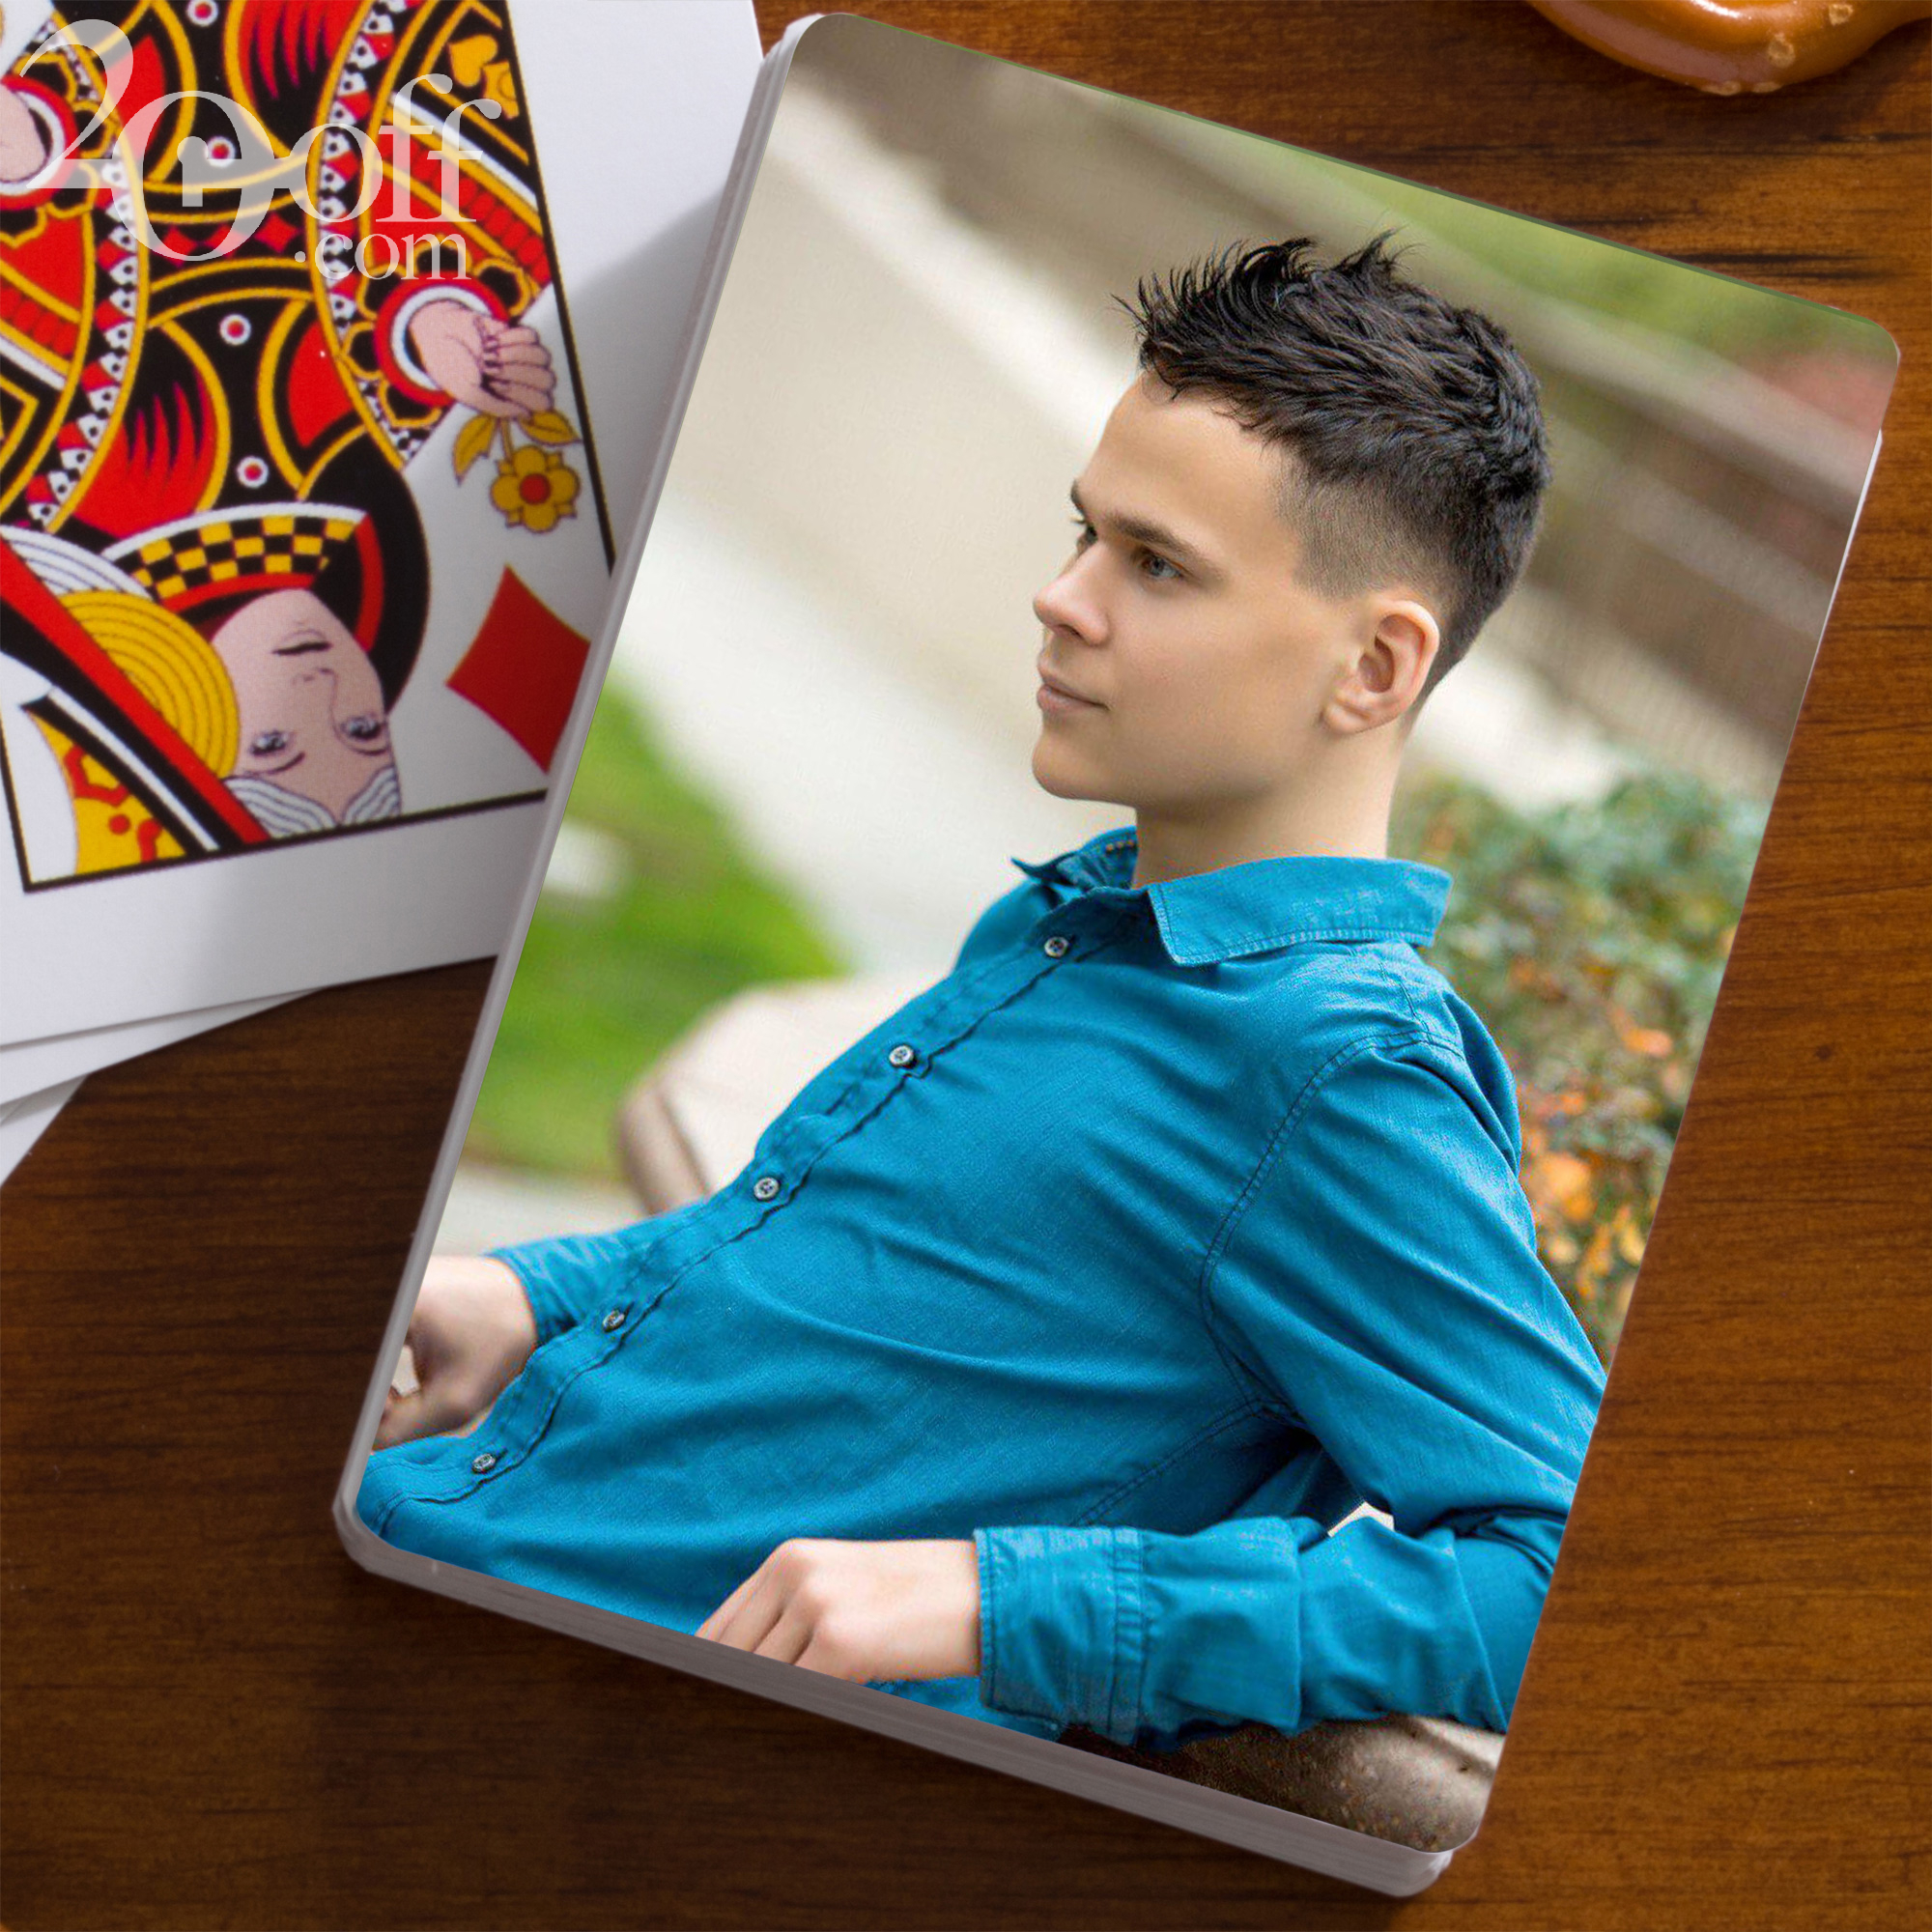 Personalized Photo Plaing Cards Discount